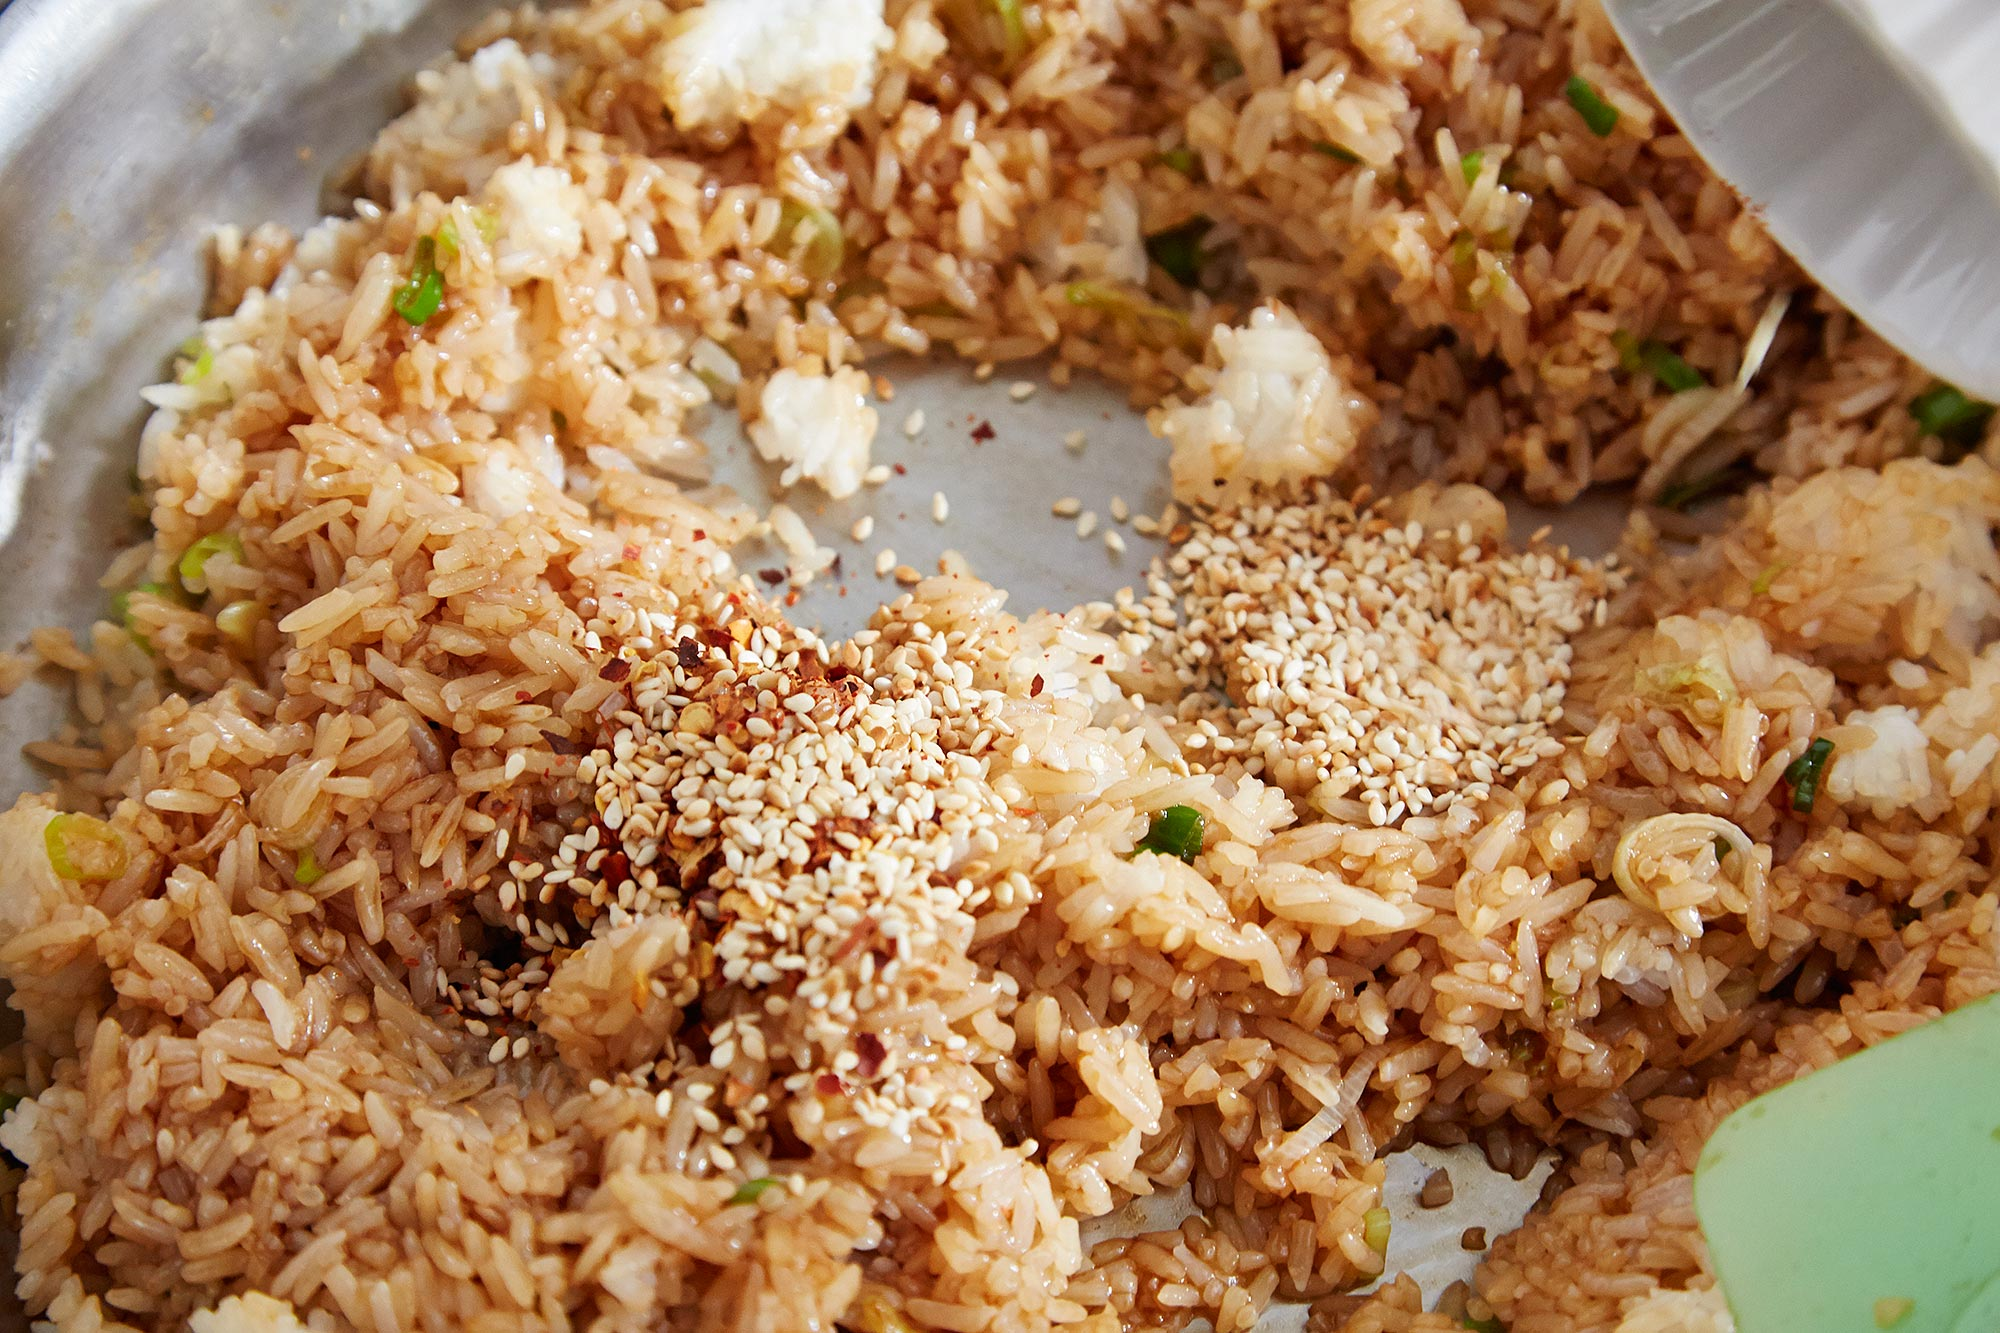 2014-0408_finalist_breakfast-fried-rice-025-121